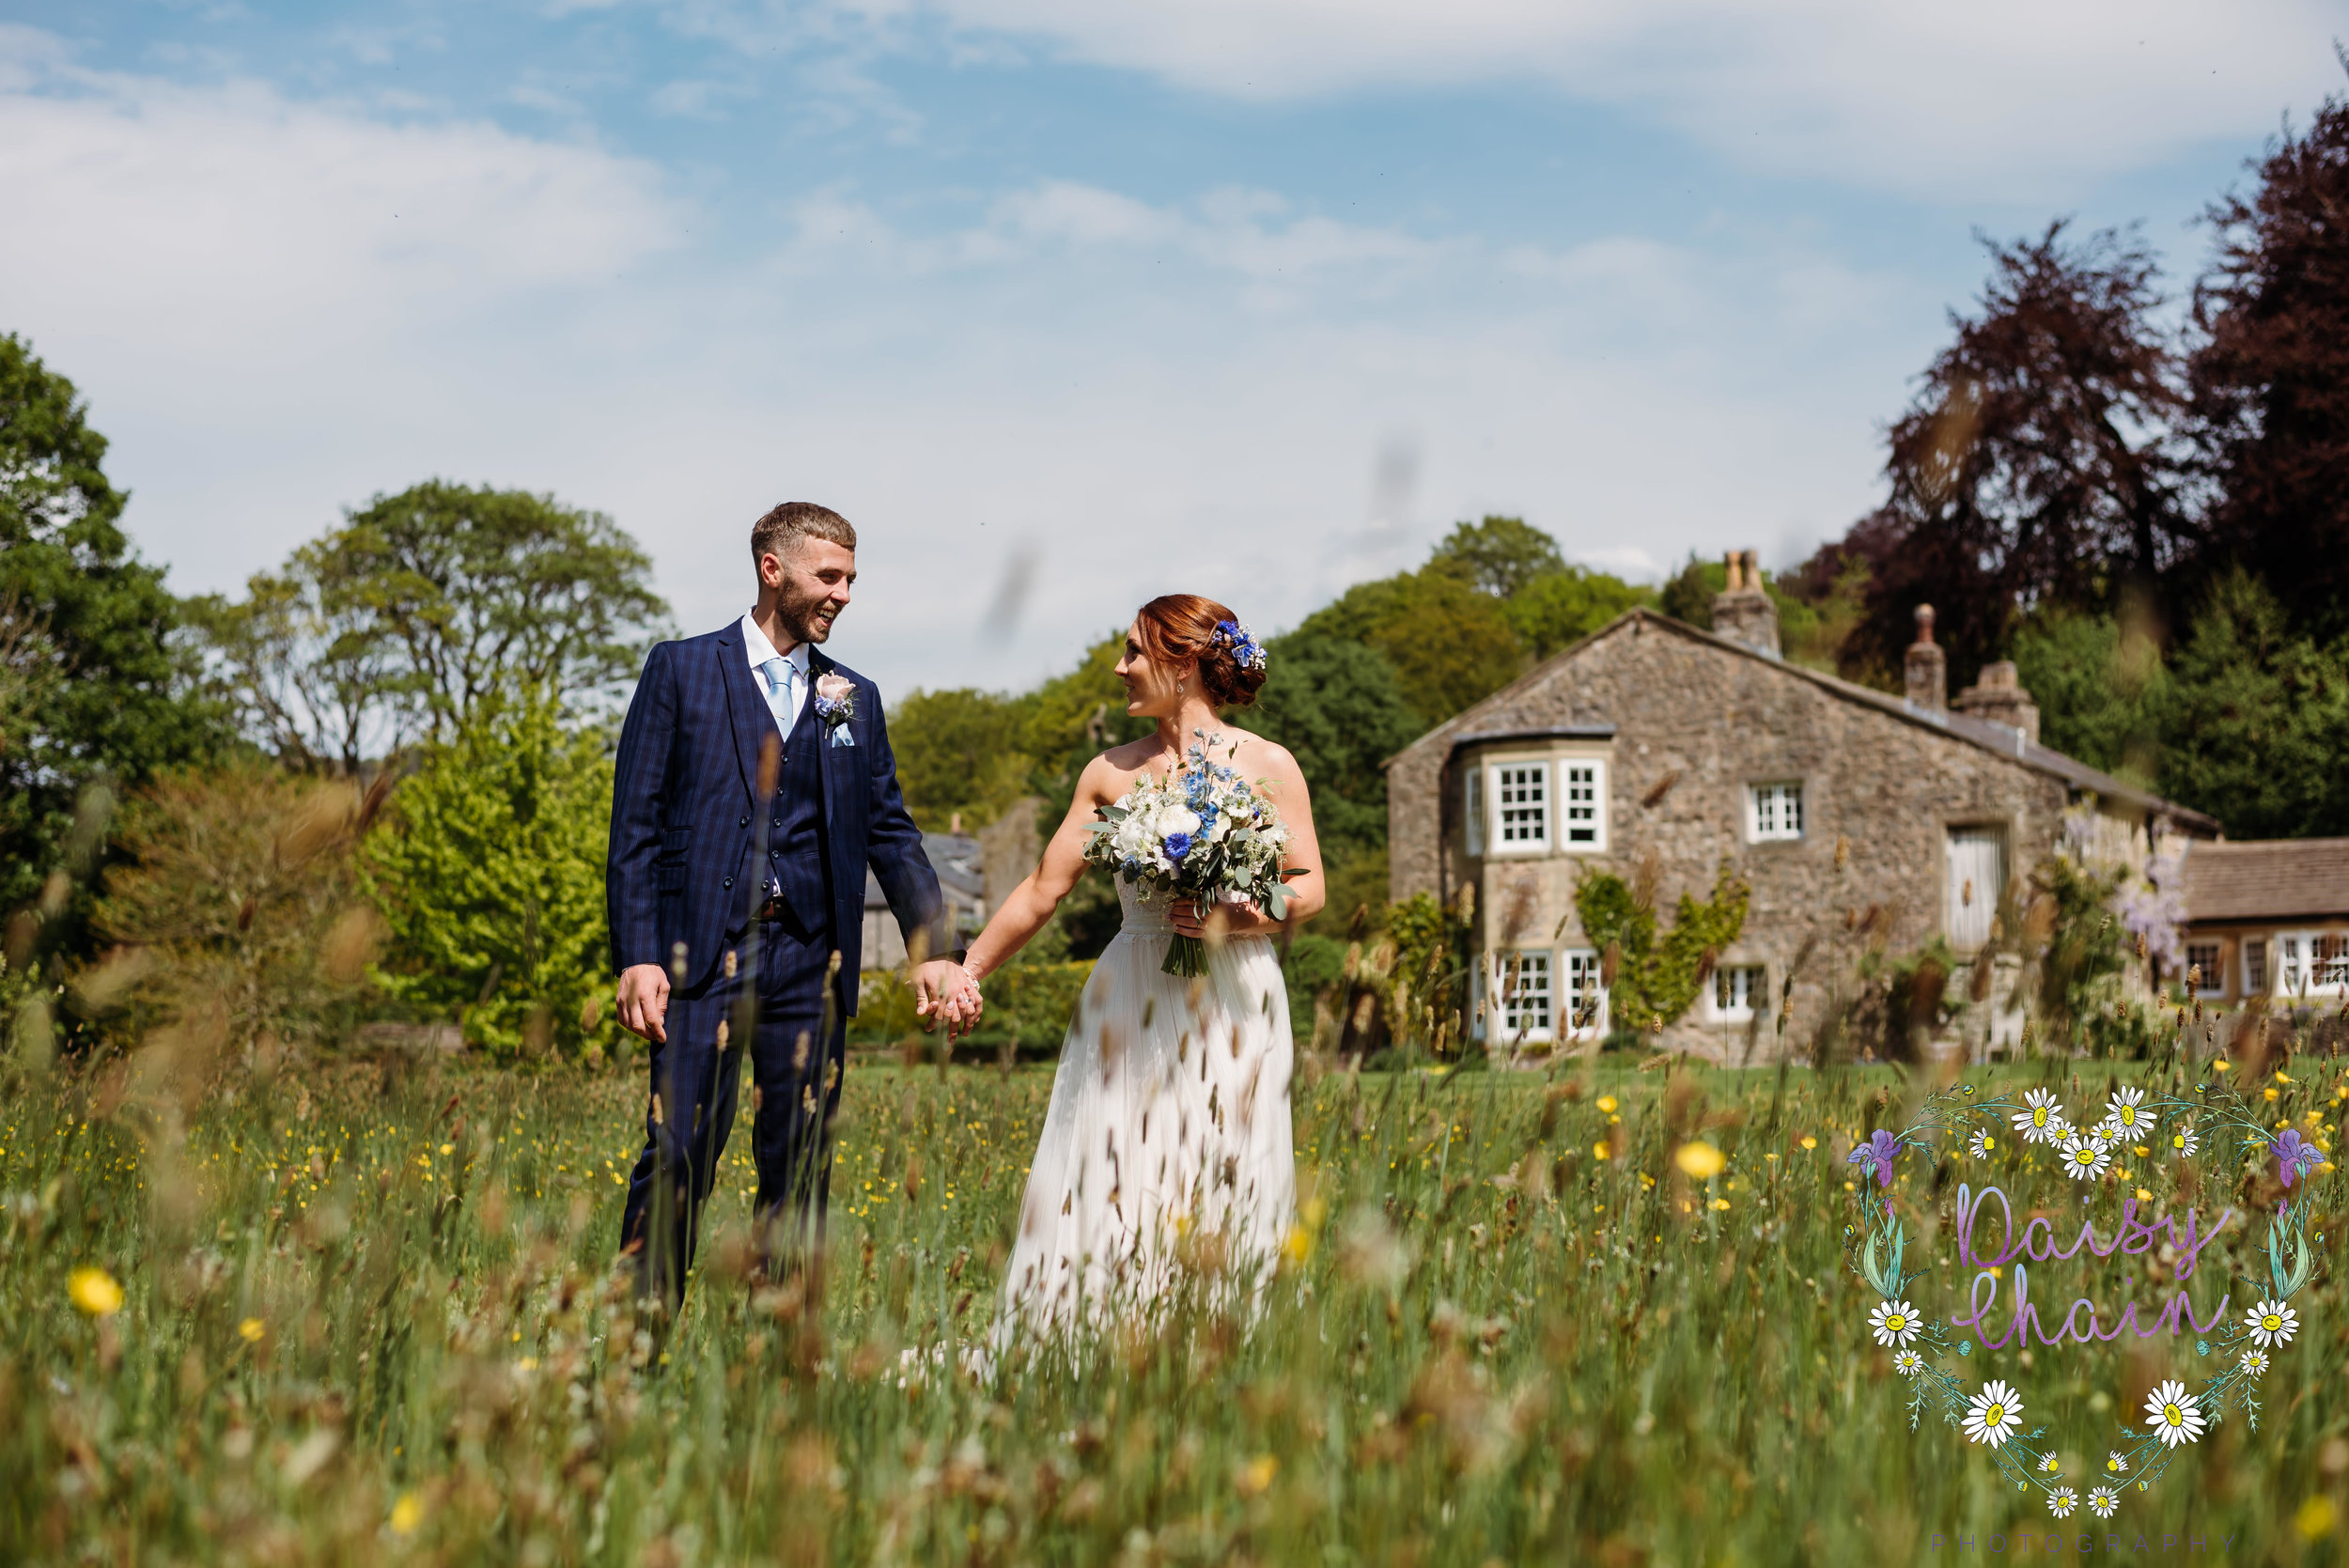 Inn at Whitewell wedding - Ribble Valley